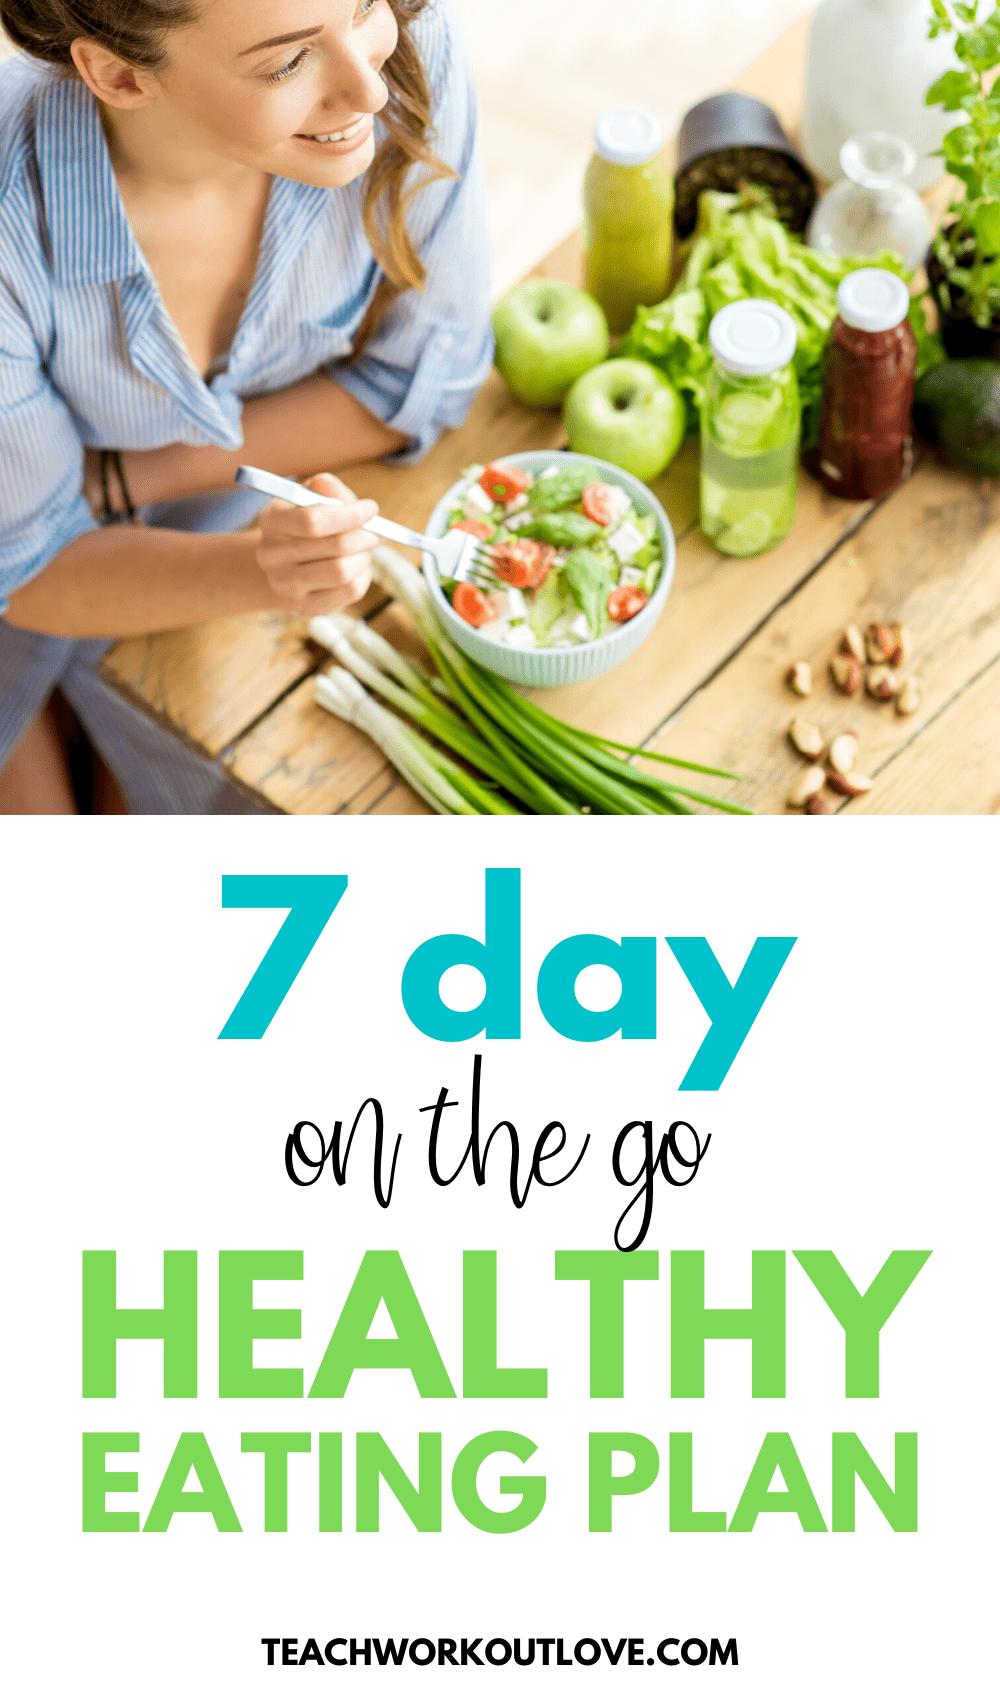 We have put together a 7-day on-the-go healthy eating plan and an easy plan to stick with, plus a free printable meal planning worksheet!